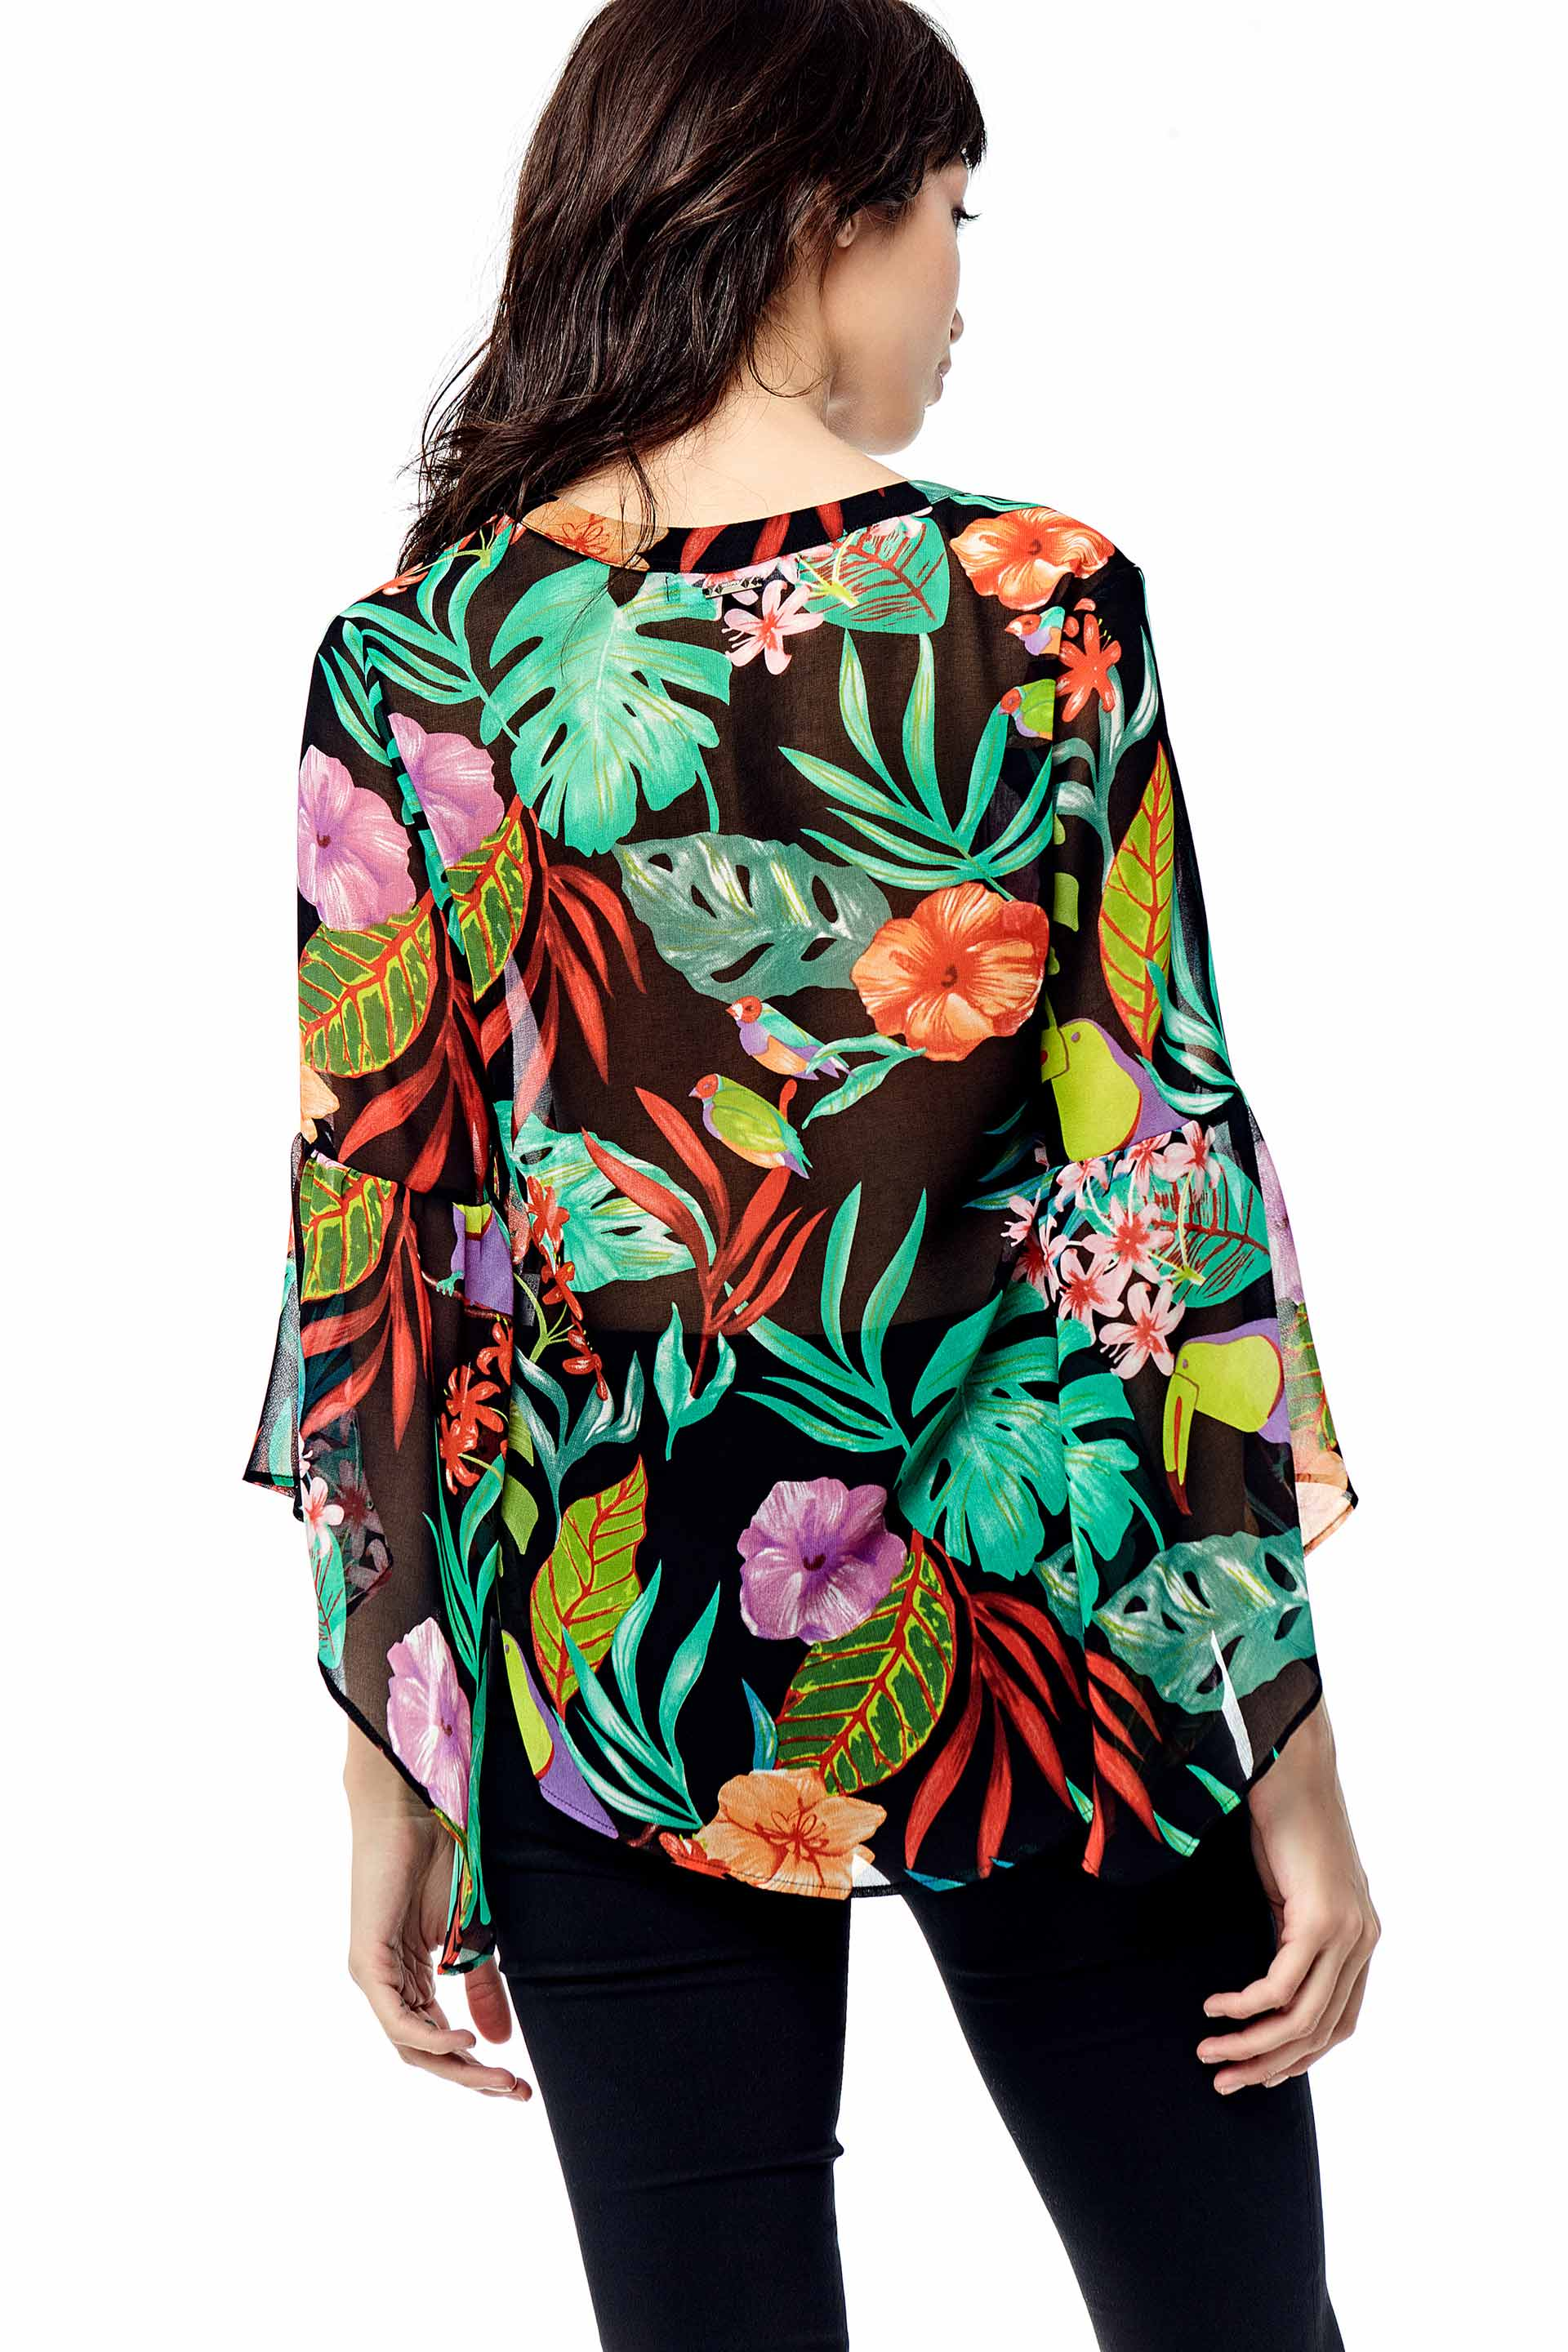 markova_blusa-tropical-_56-27-2019__picture-25851